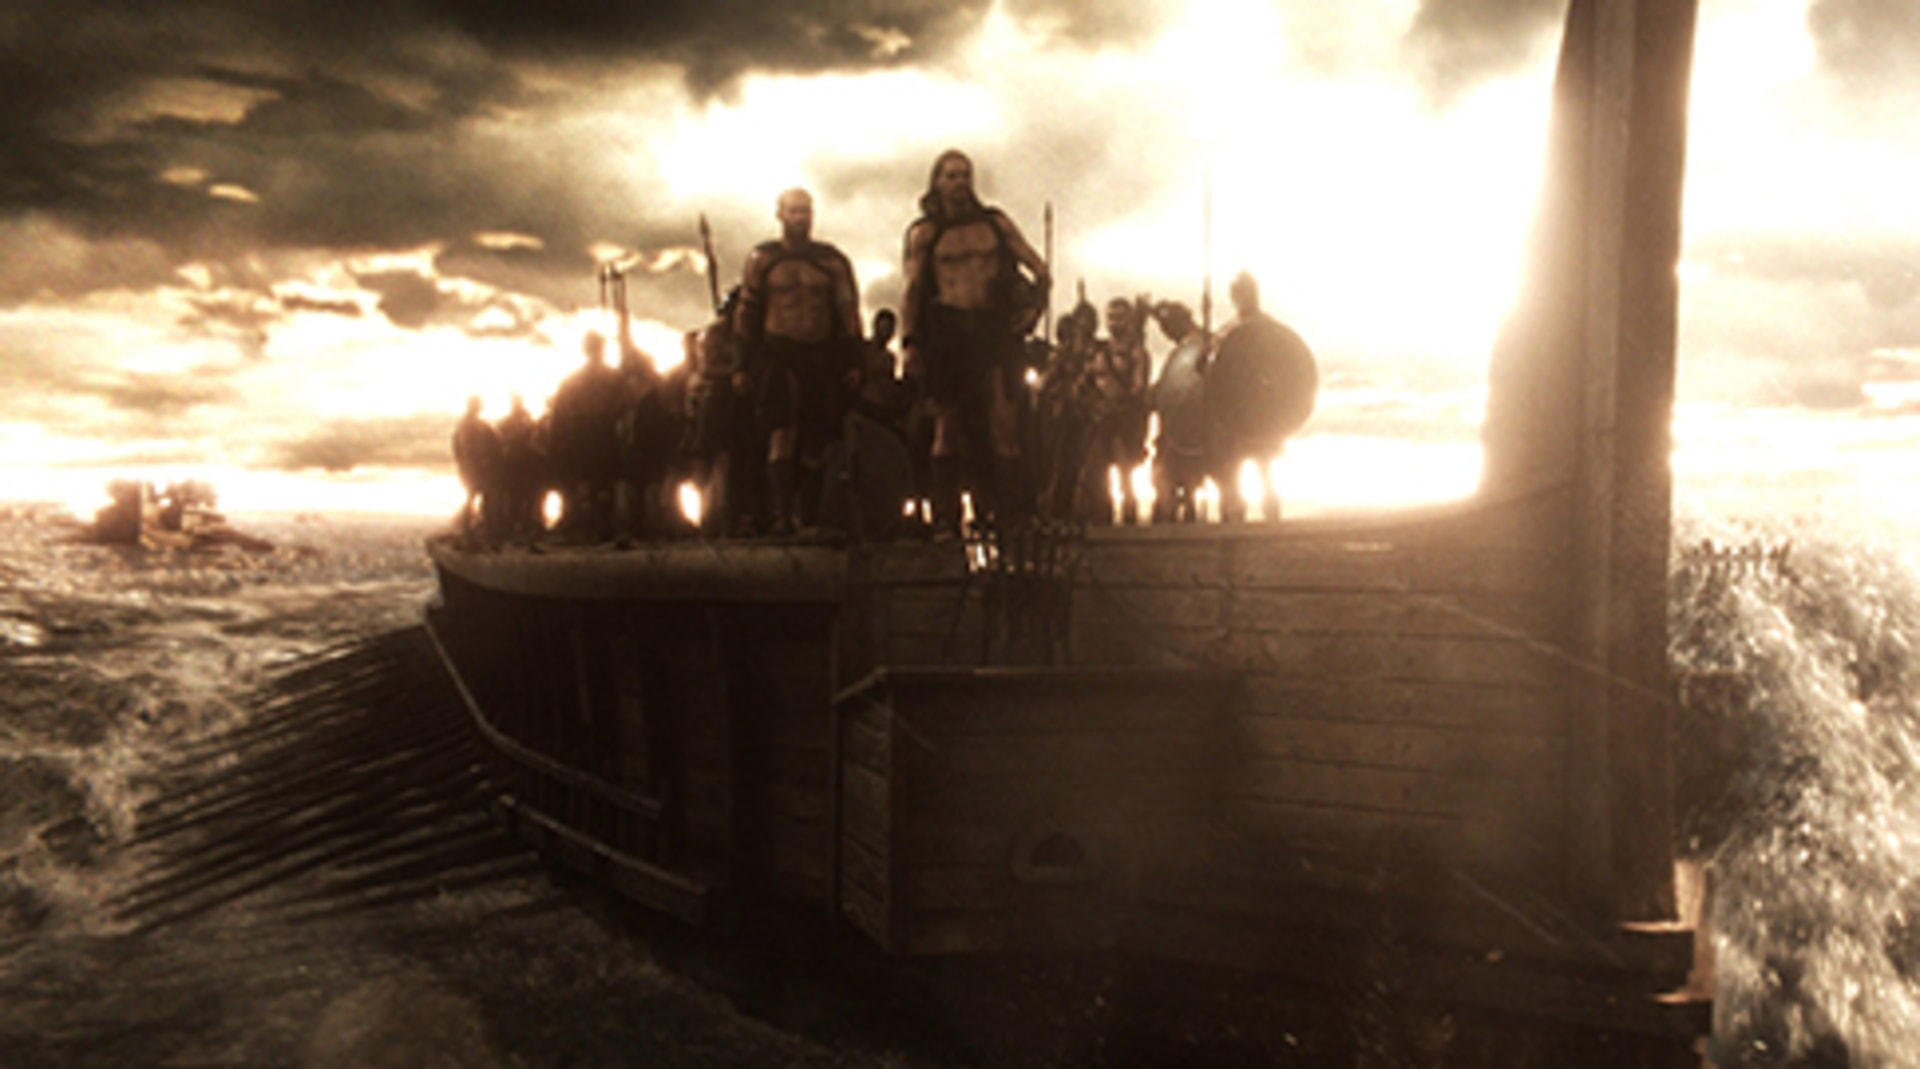 300: Rise of an Empire - Image 6